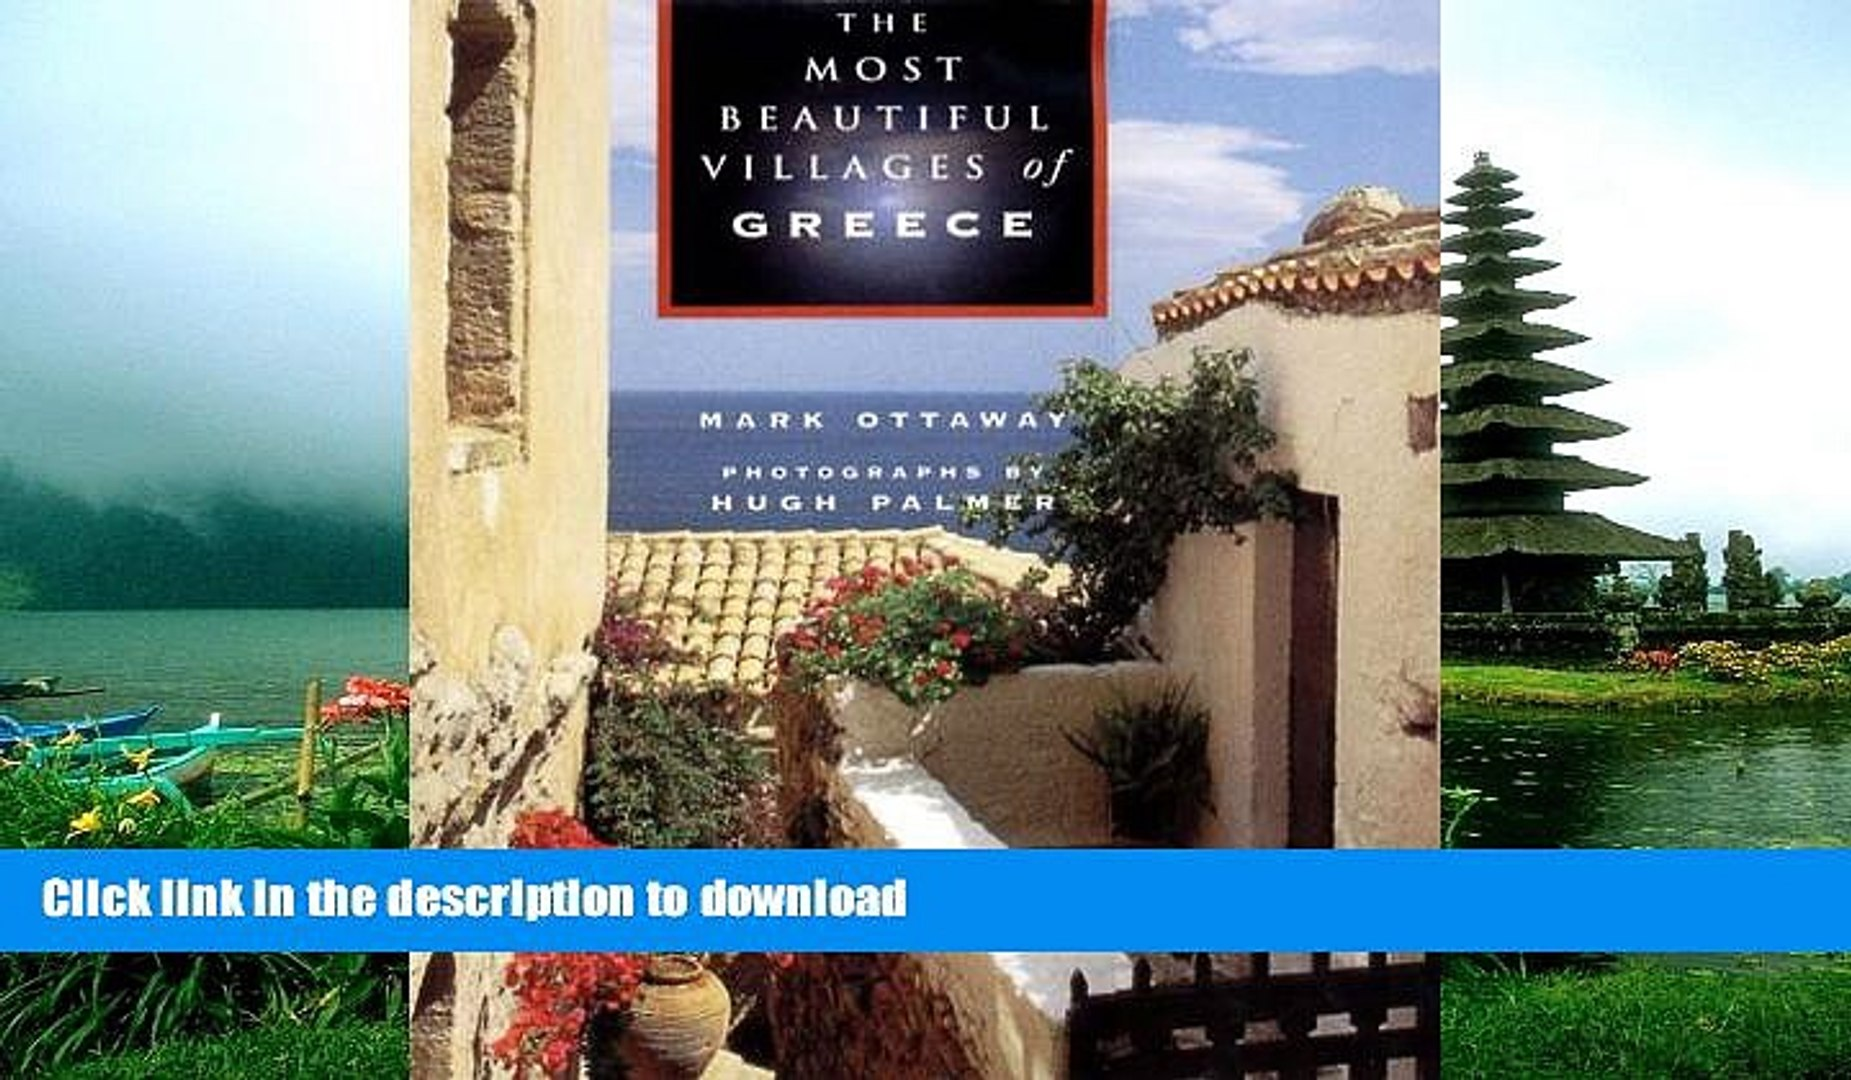 READ  The Most Beautiful Villages of Greece (Most Beautiful Villages) FULL ONLINE